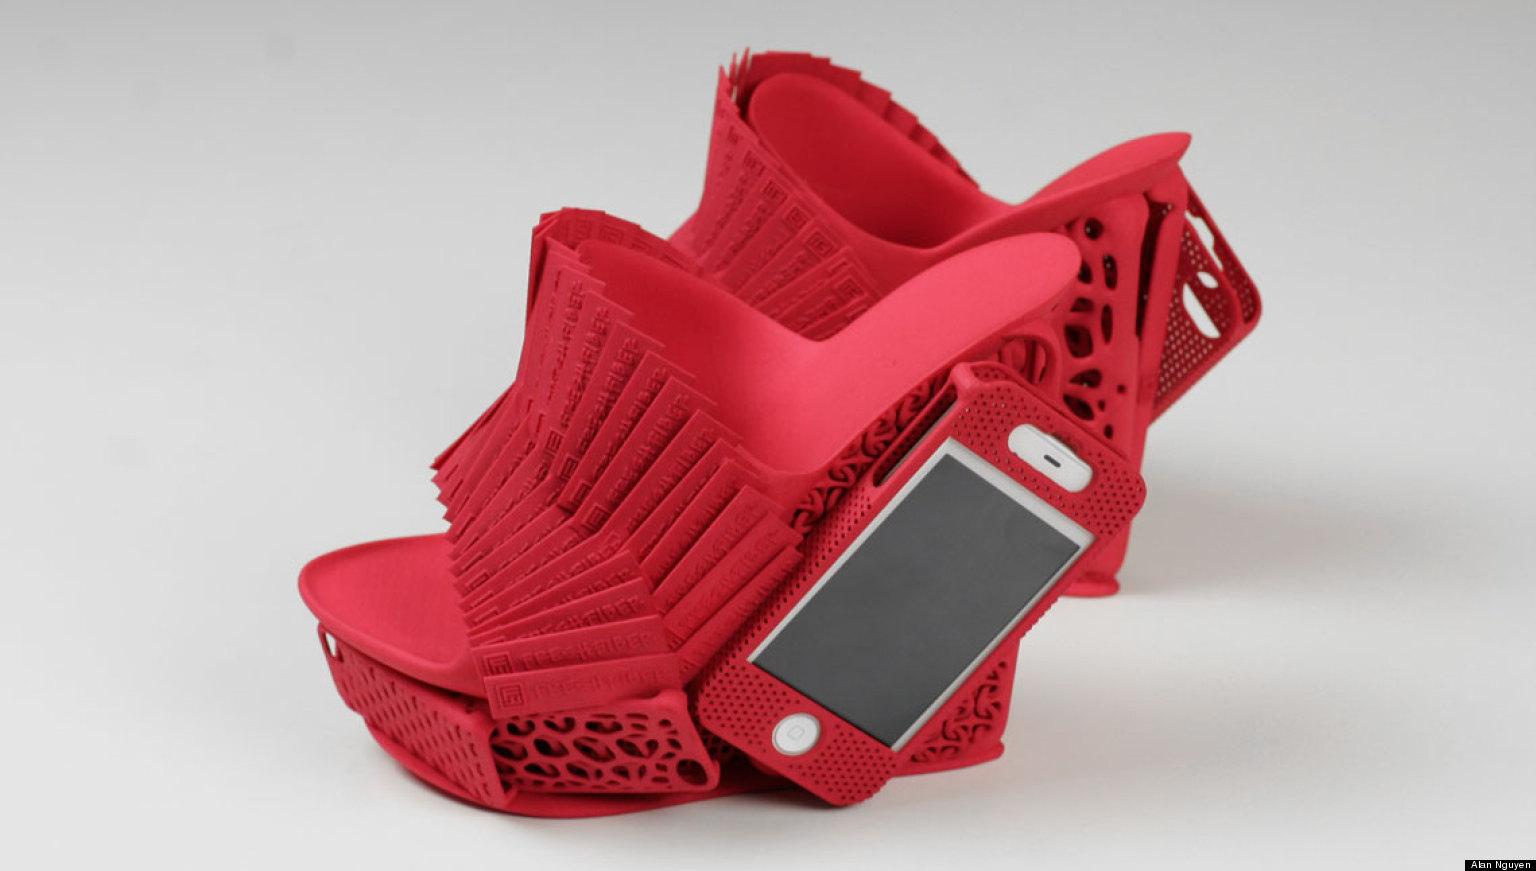 3d printed iphone holder shoes are the footwear of choice. Black Bedroom Furniture Sets. Home Design Ideas